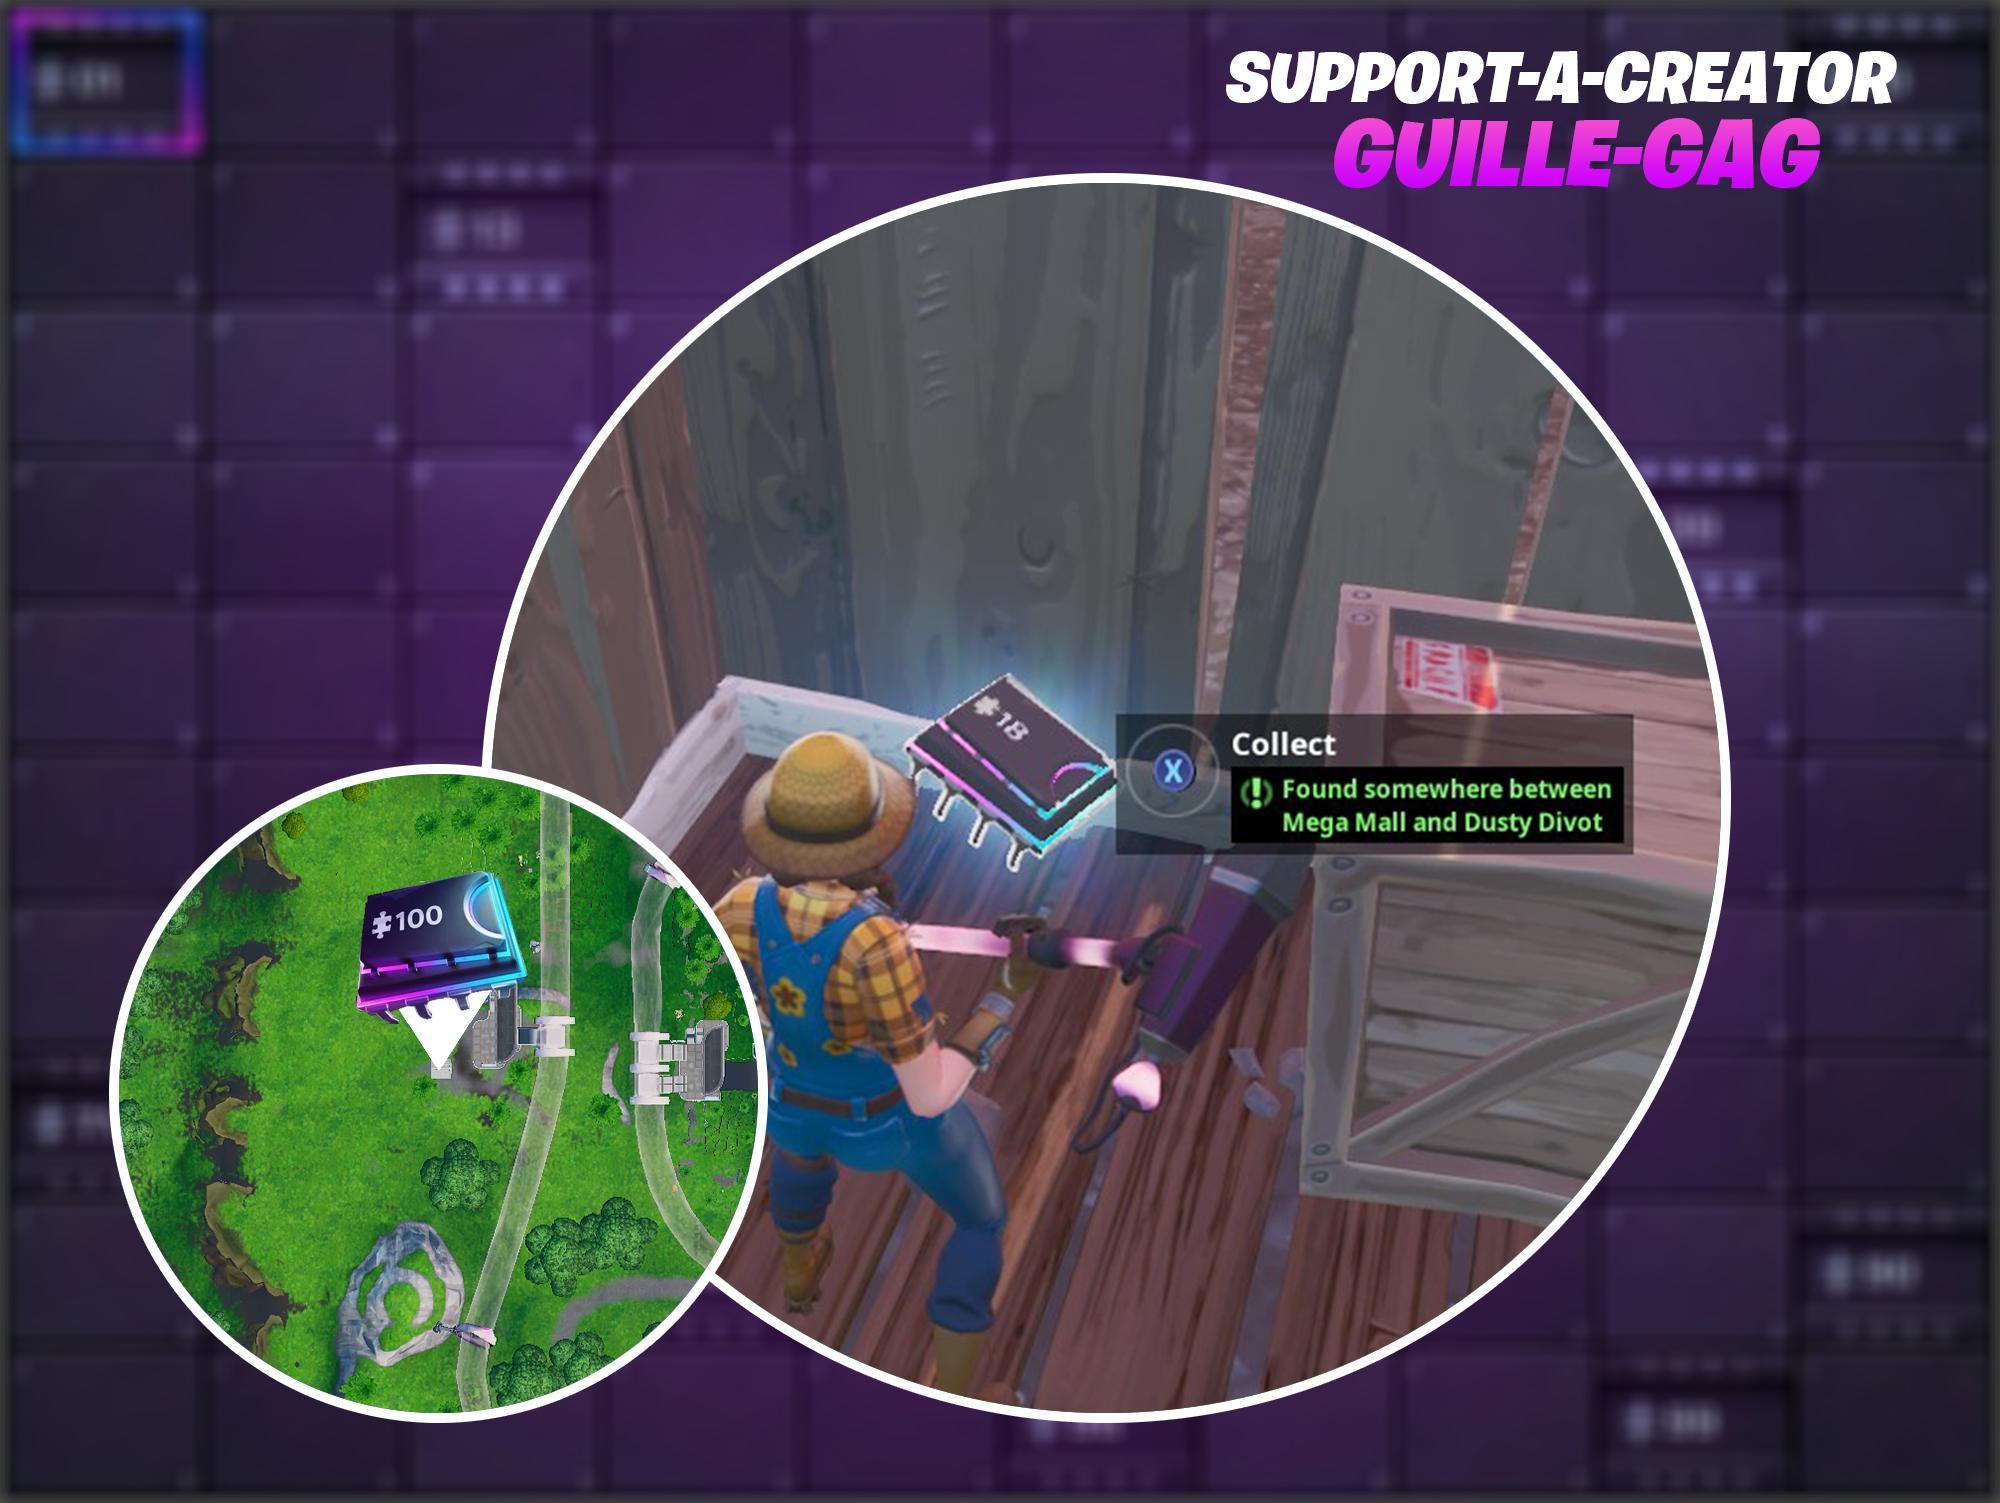 Fortnite Fortbyte #18 Location - Found Somewhere Between Mega Mall and Dusty Divot